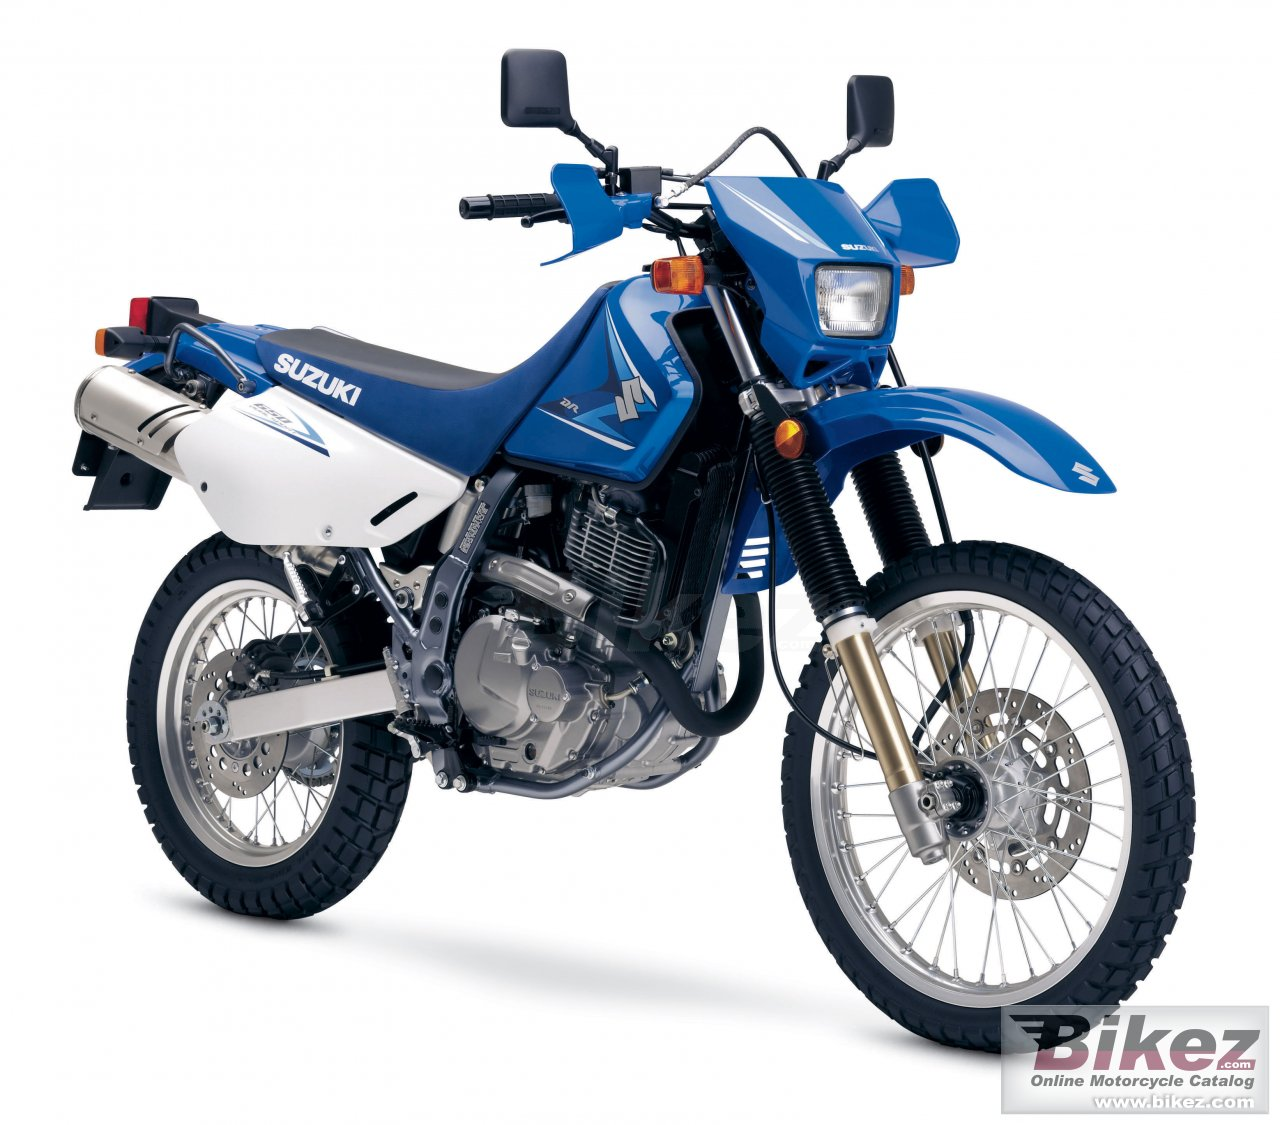 Big Suzuki dr650se picture and wallpaper from Bikez.com